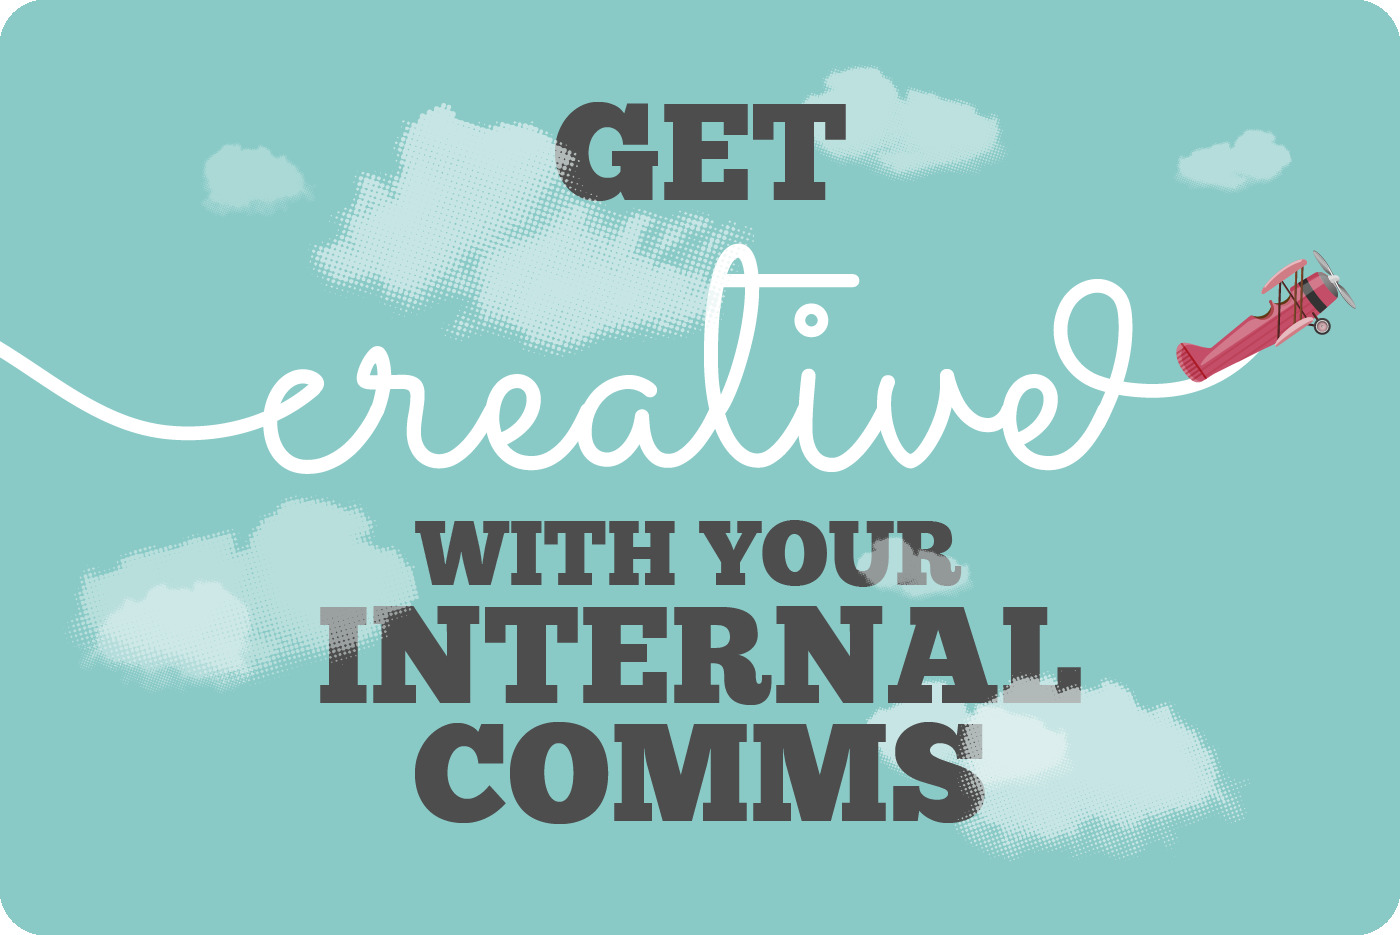 Creative comms ideas header image